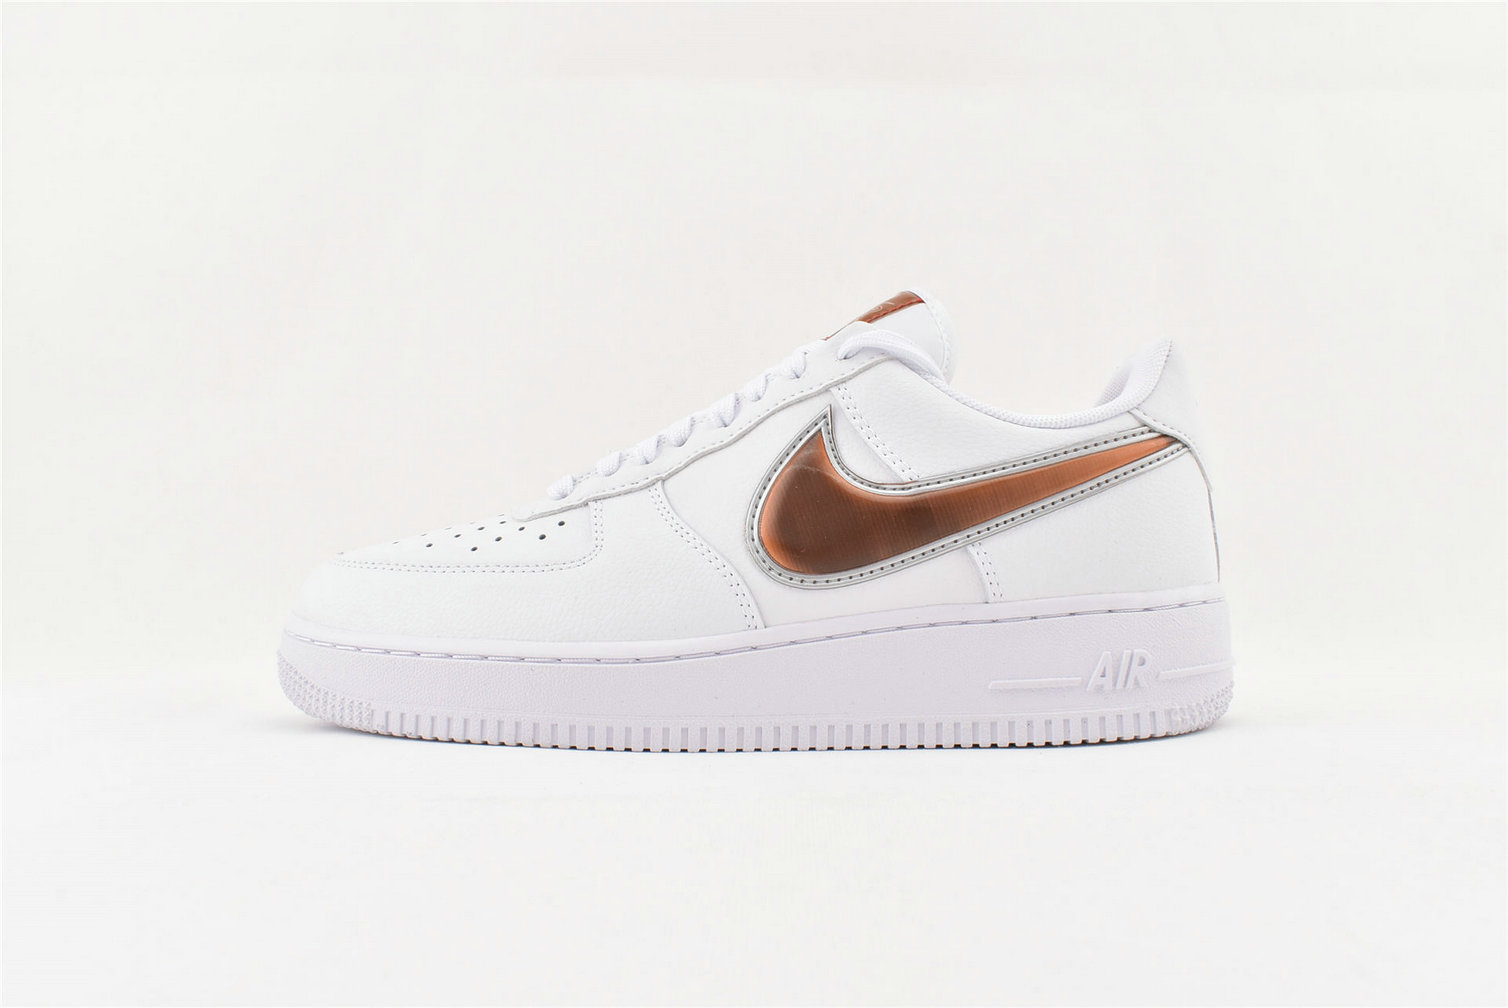 Where To Buy Wholesale Cheap Nike Air Force 1 07 LV8 3 White Court Purple Infrared 23 CI6387-171 - www.wholesaleflyknit.com